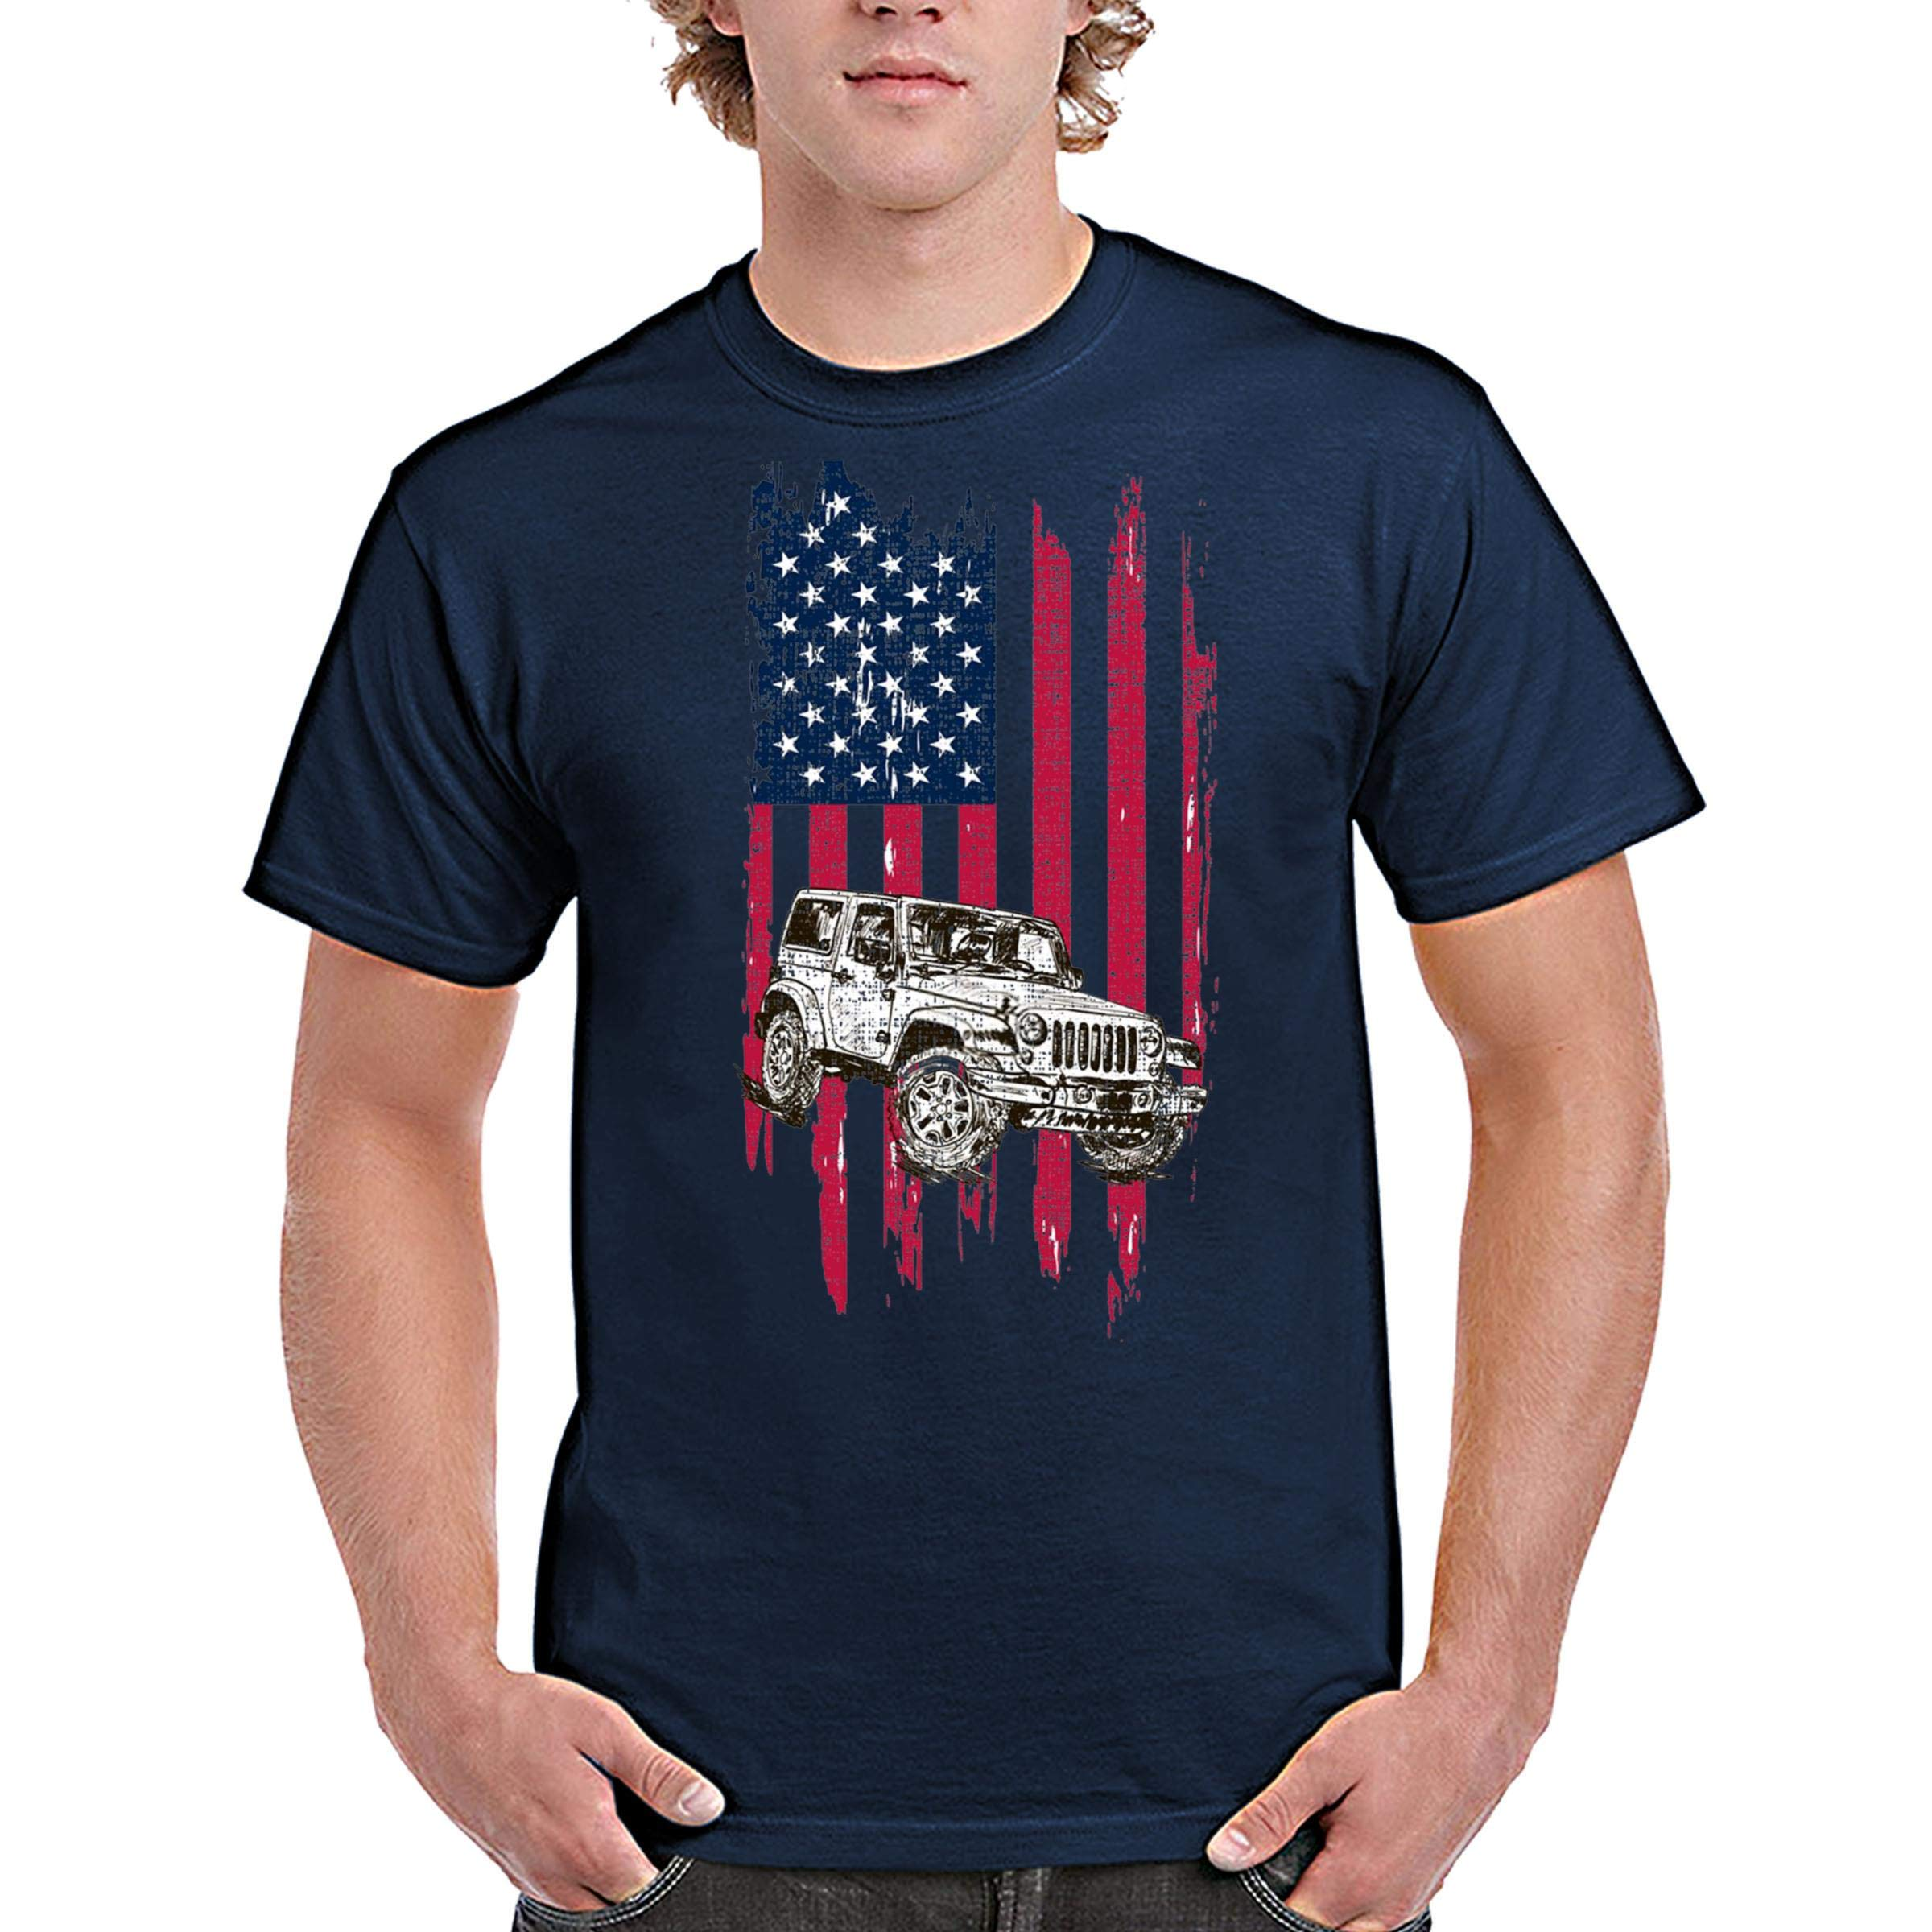 zipstore Vintage Flag Jeep T-Shirt for Men Women Love Jeep Car Proud of American